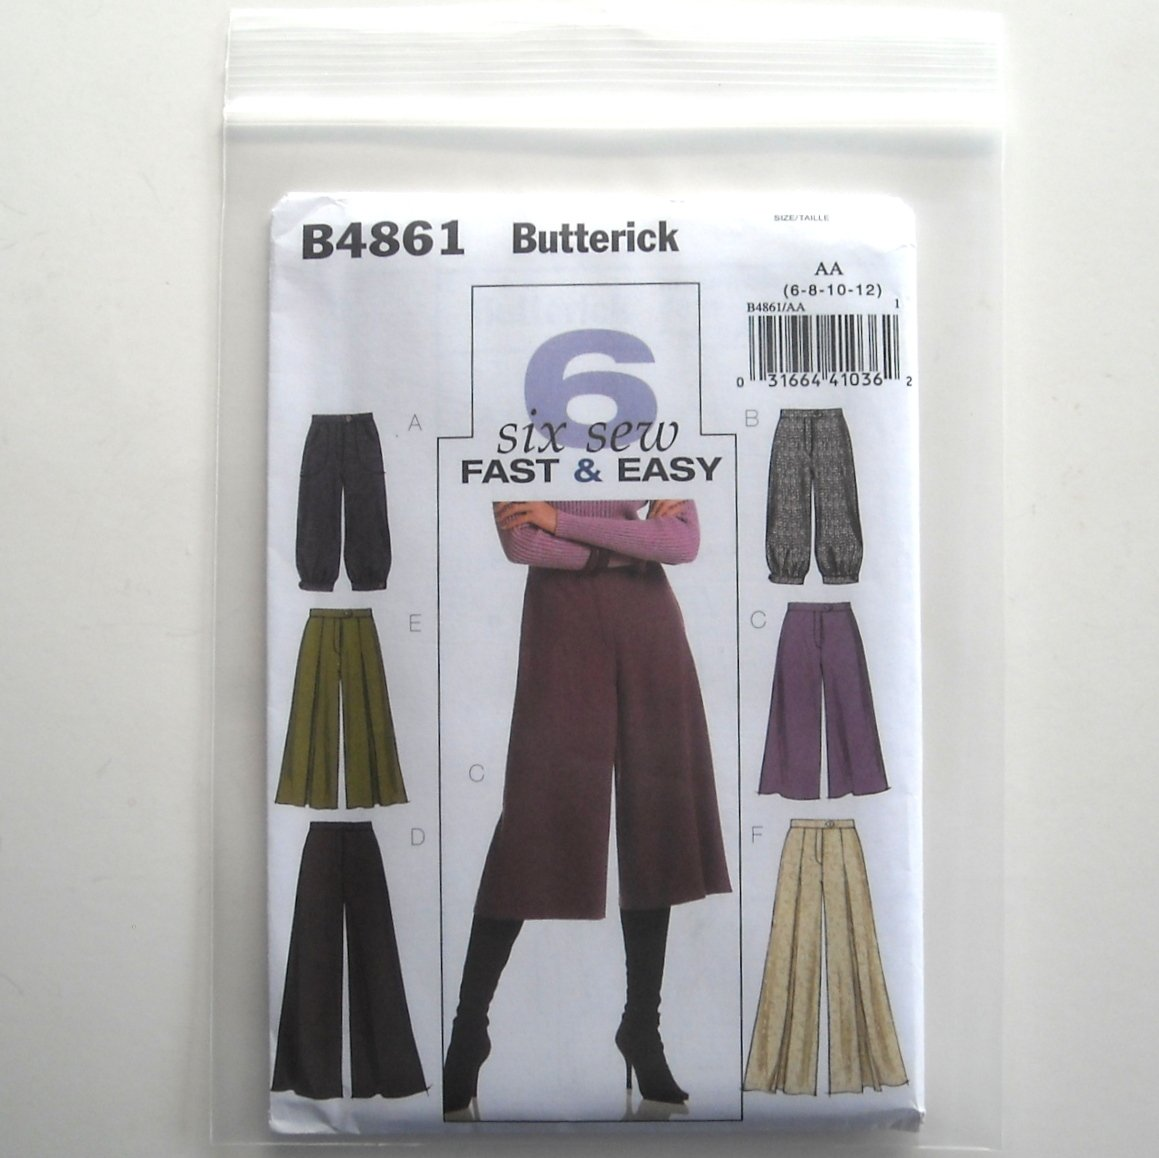 Butterick Pattern B4861 Size 6 - 12 6 Fast Easy Misses Pants and Gaucho Pants